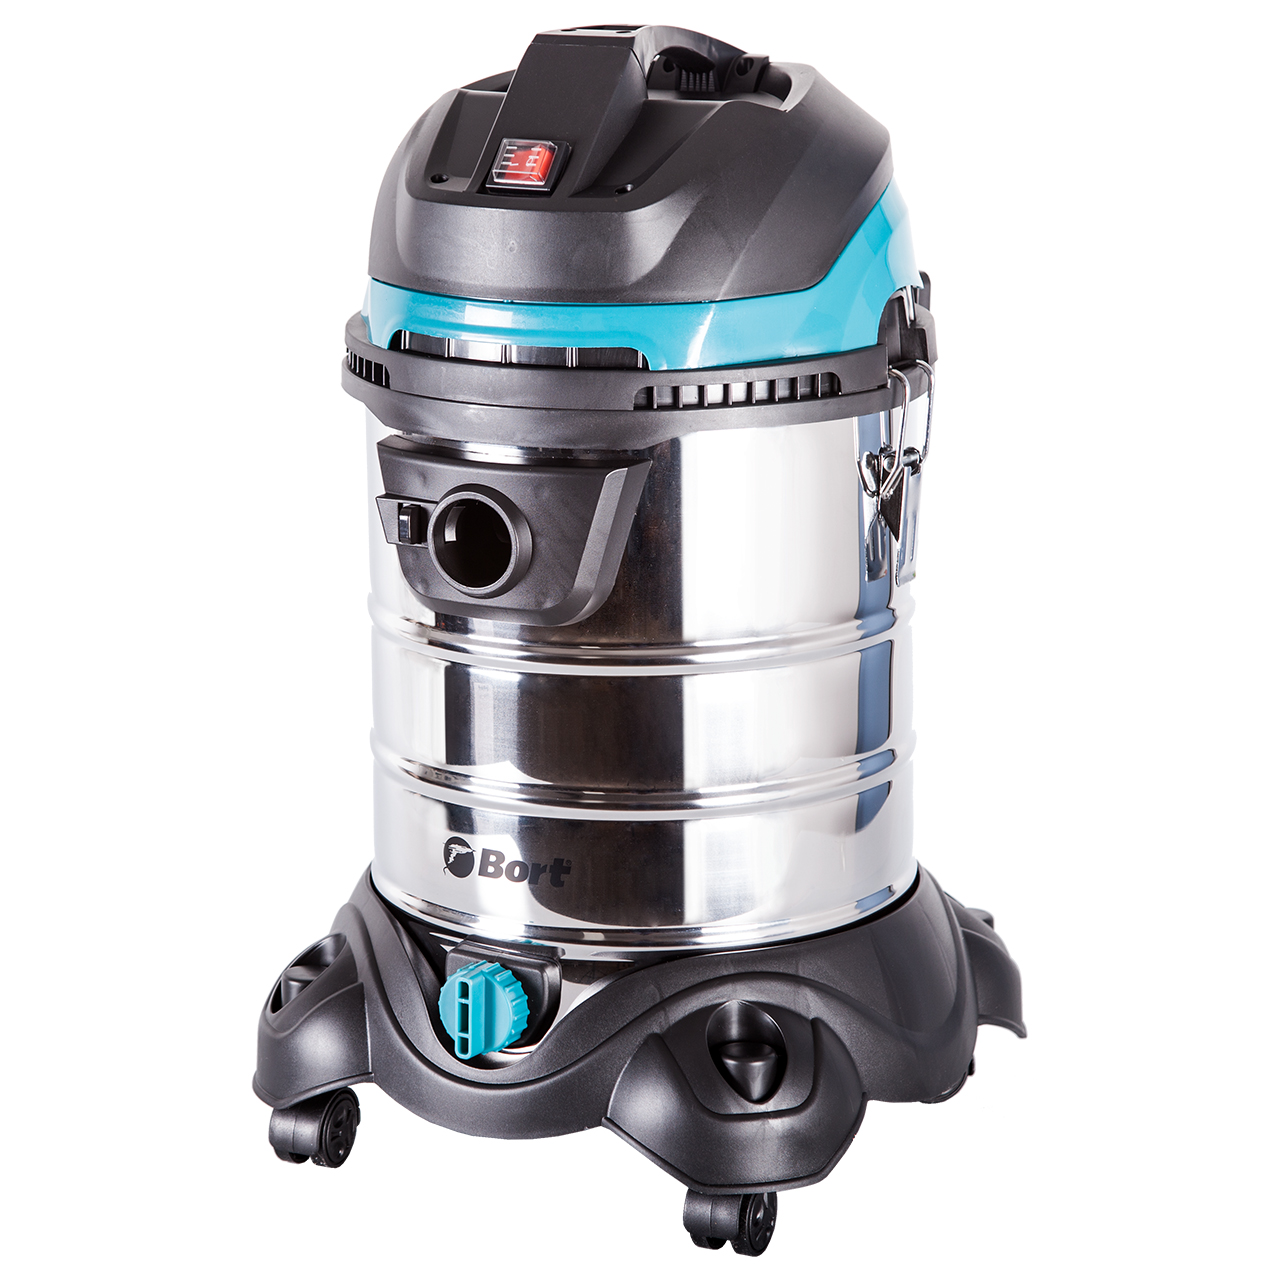 Vacuum cleaner wet and dry cleaning Bort BSS-1425-PowerPlus (Power 1400 W tank 25 l HEPA filter cleaning system phil